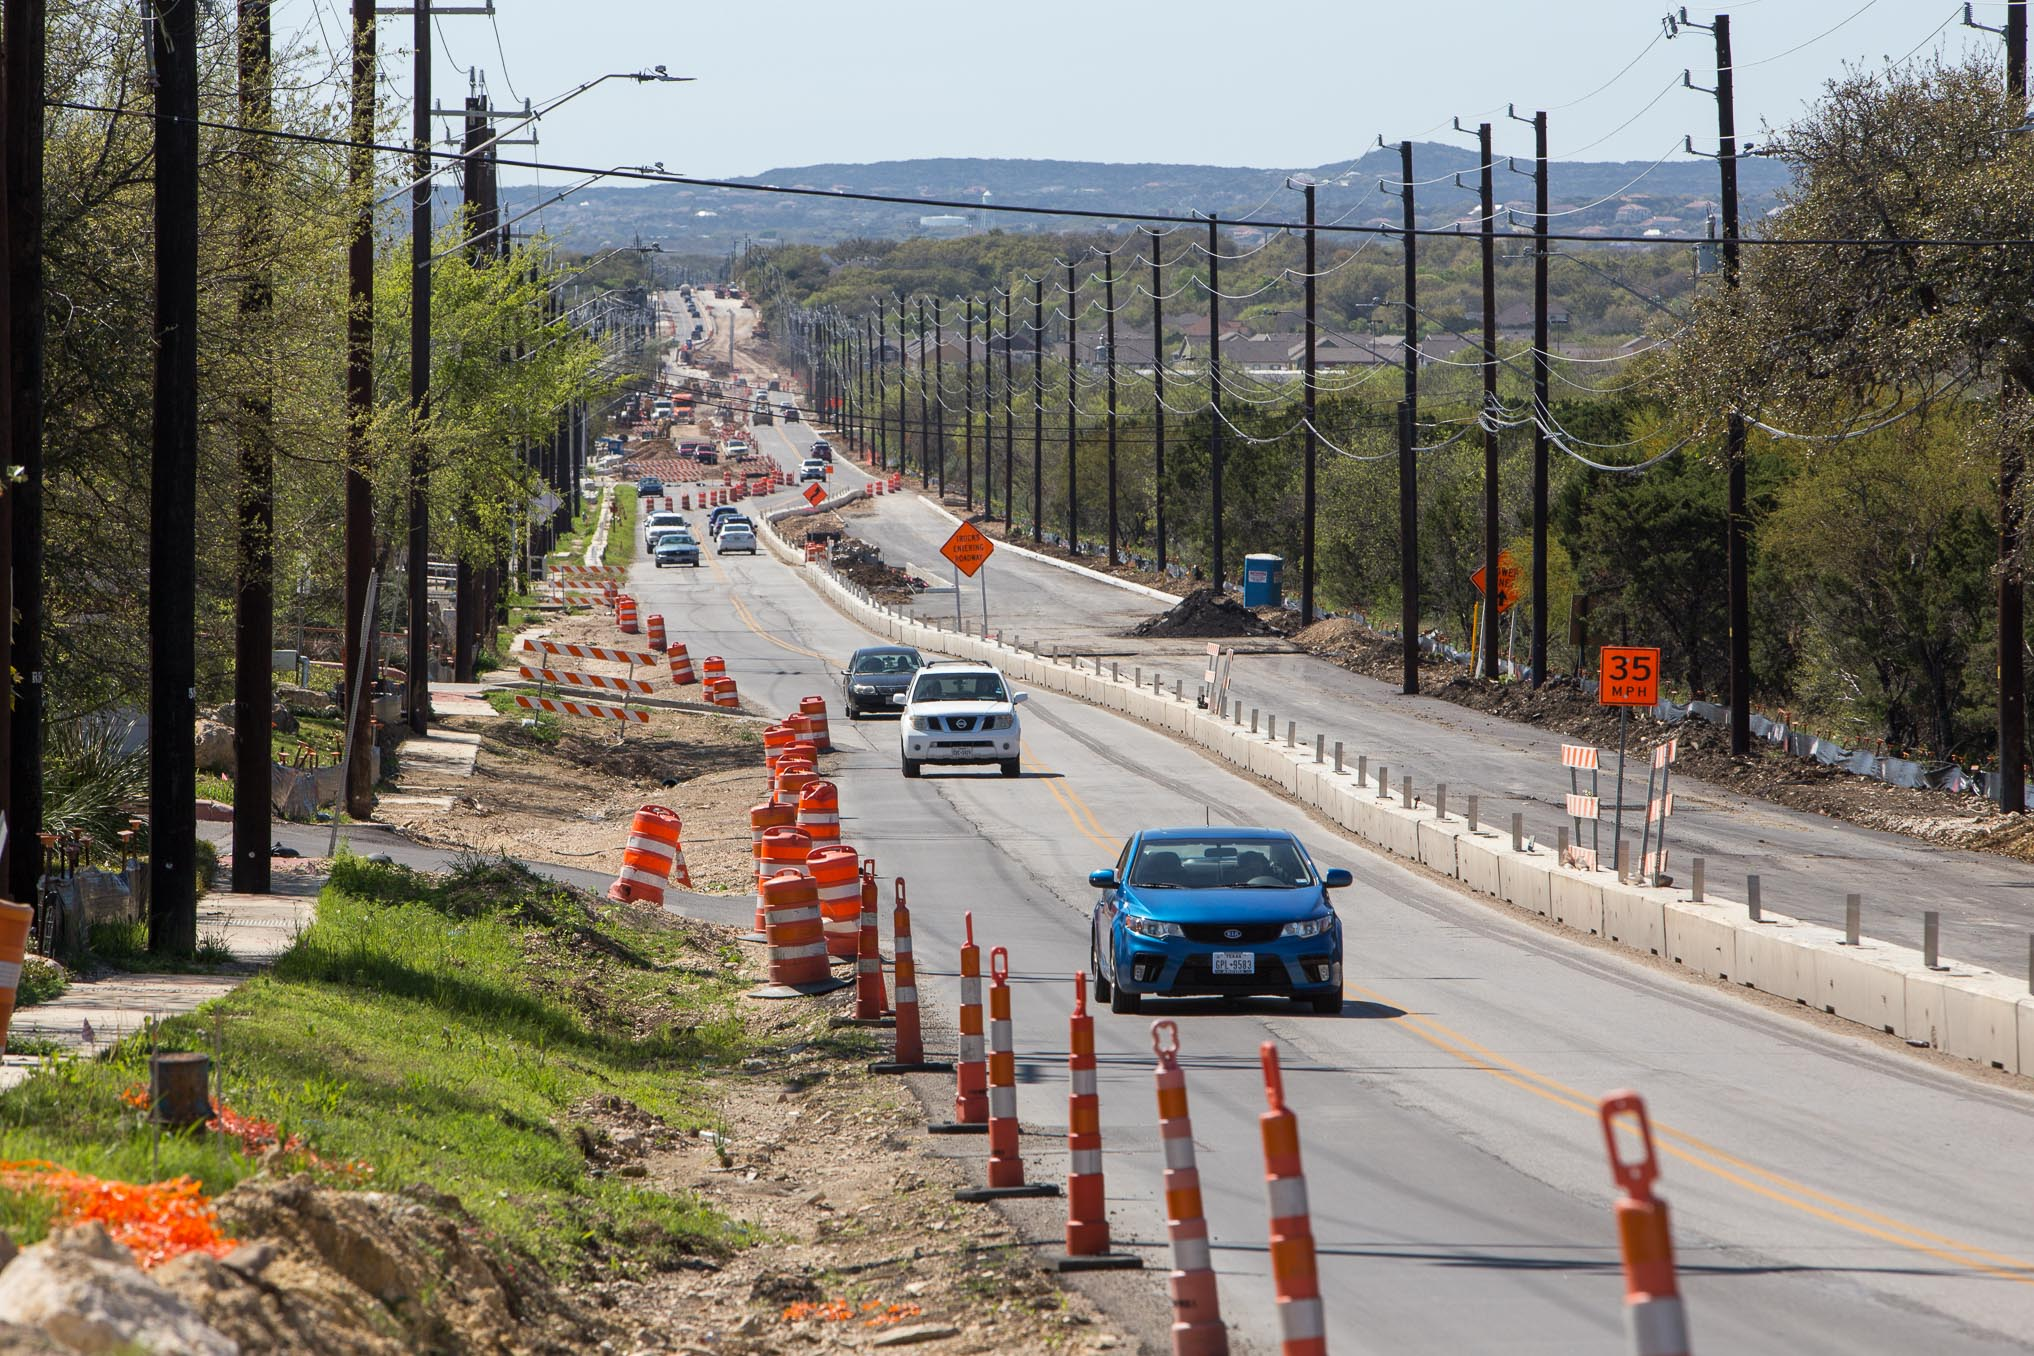 Construction along Hausman Road stretches a long distance. Photo by Scott Ball.